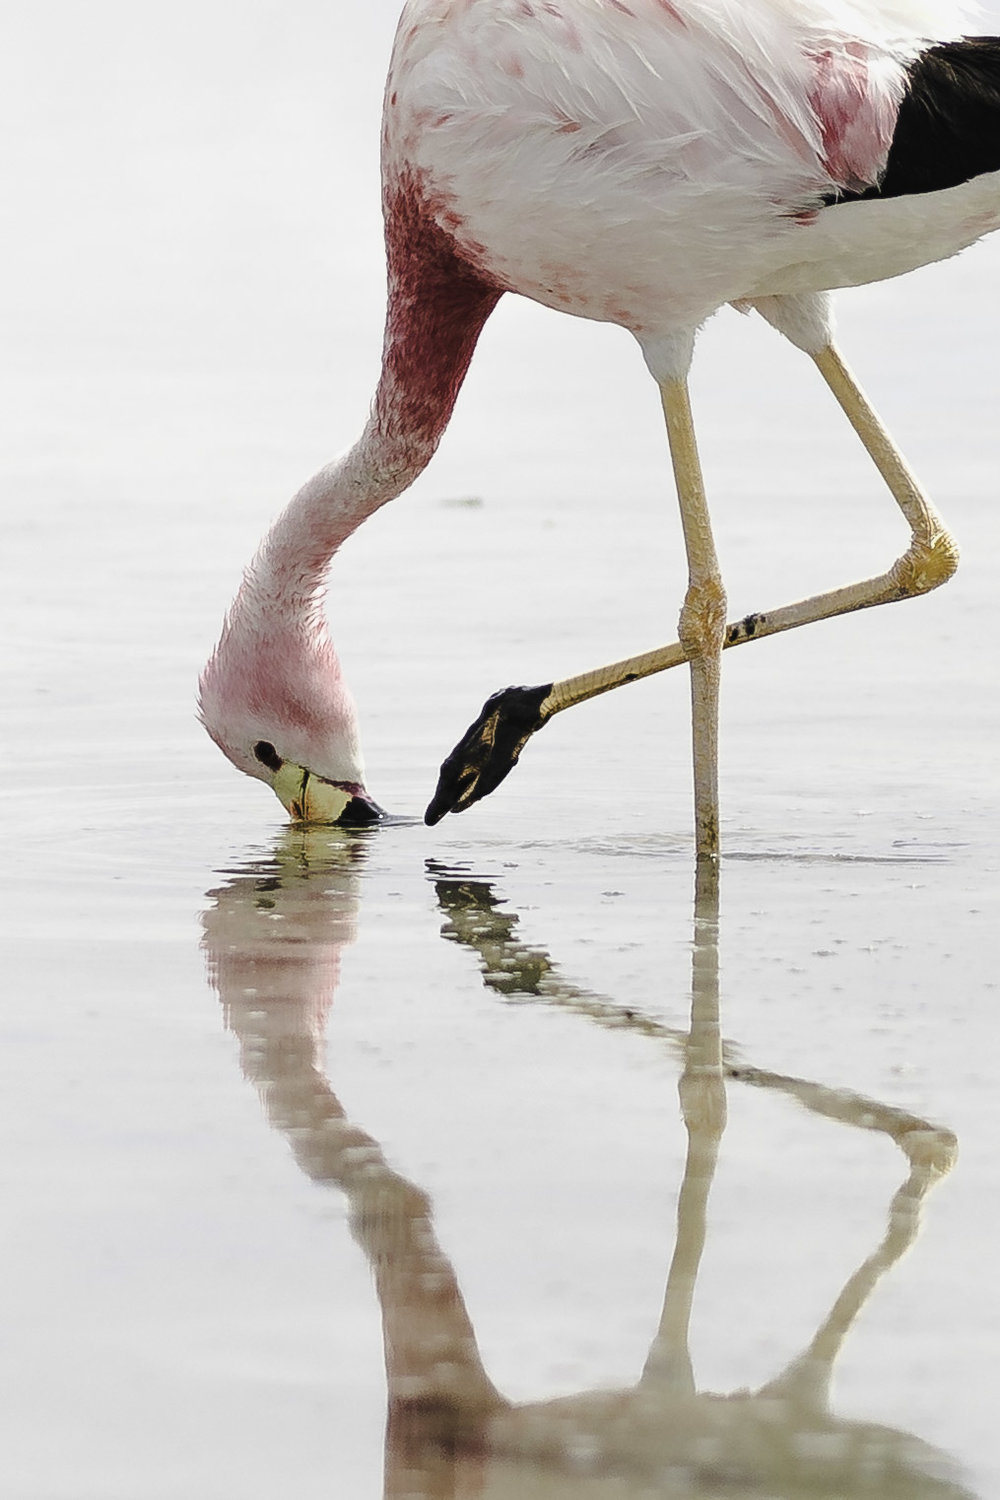 Flamingo in the Salt flats, Atacama Desert